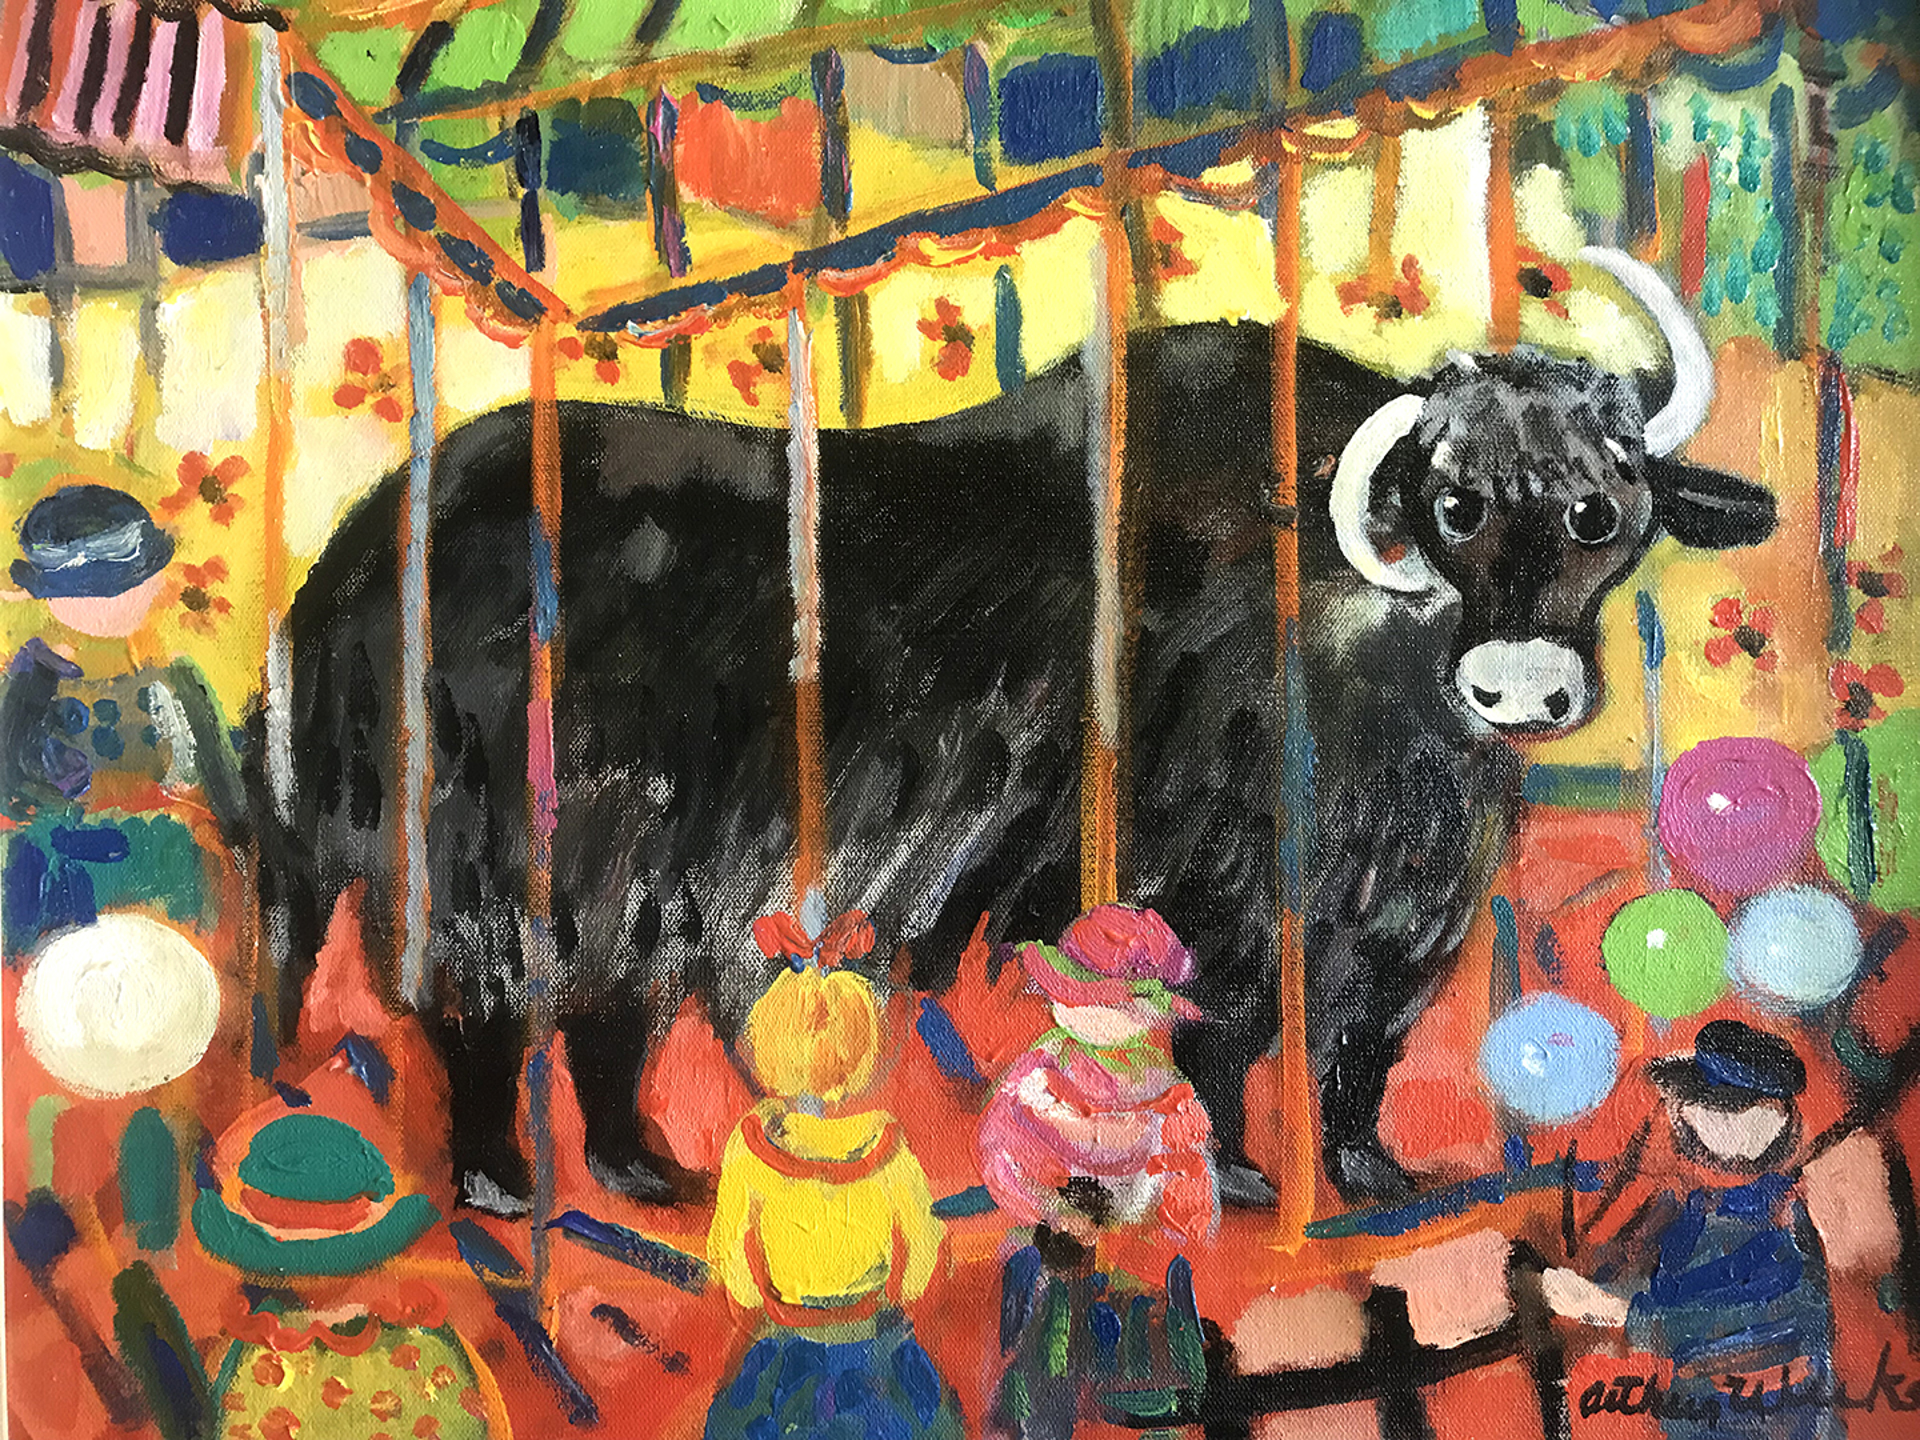 Yak at Central Park Zoo by Arthur Weeks